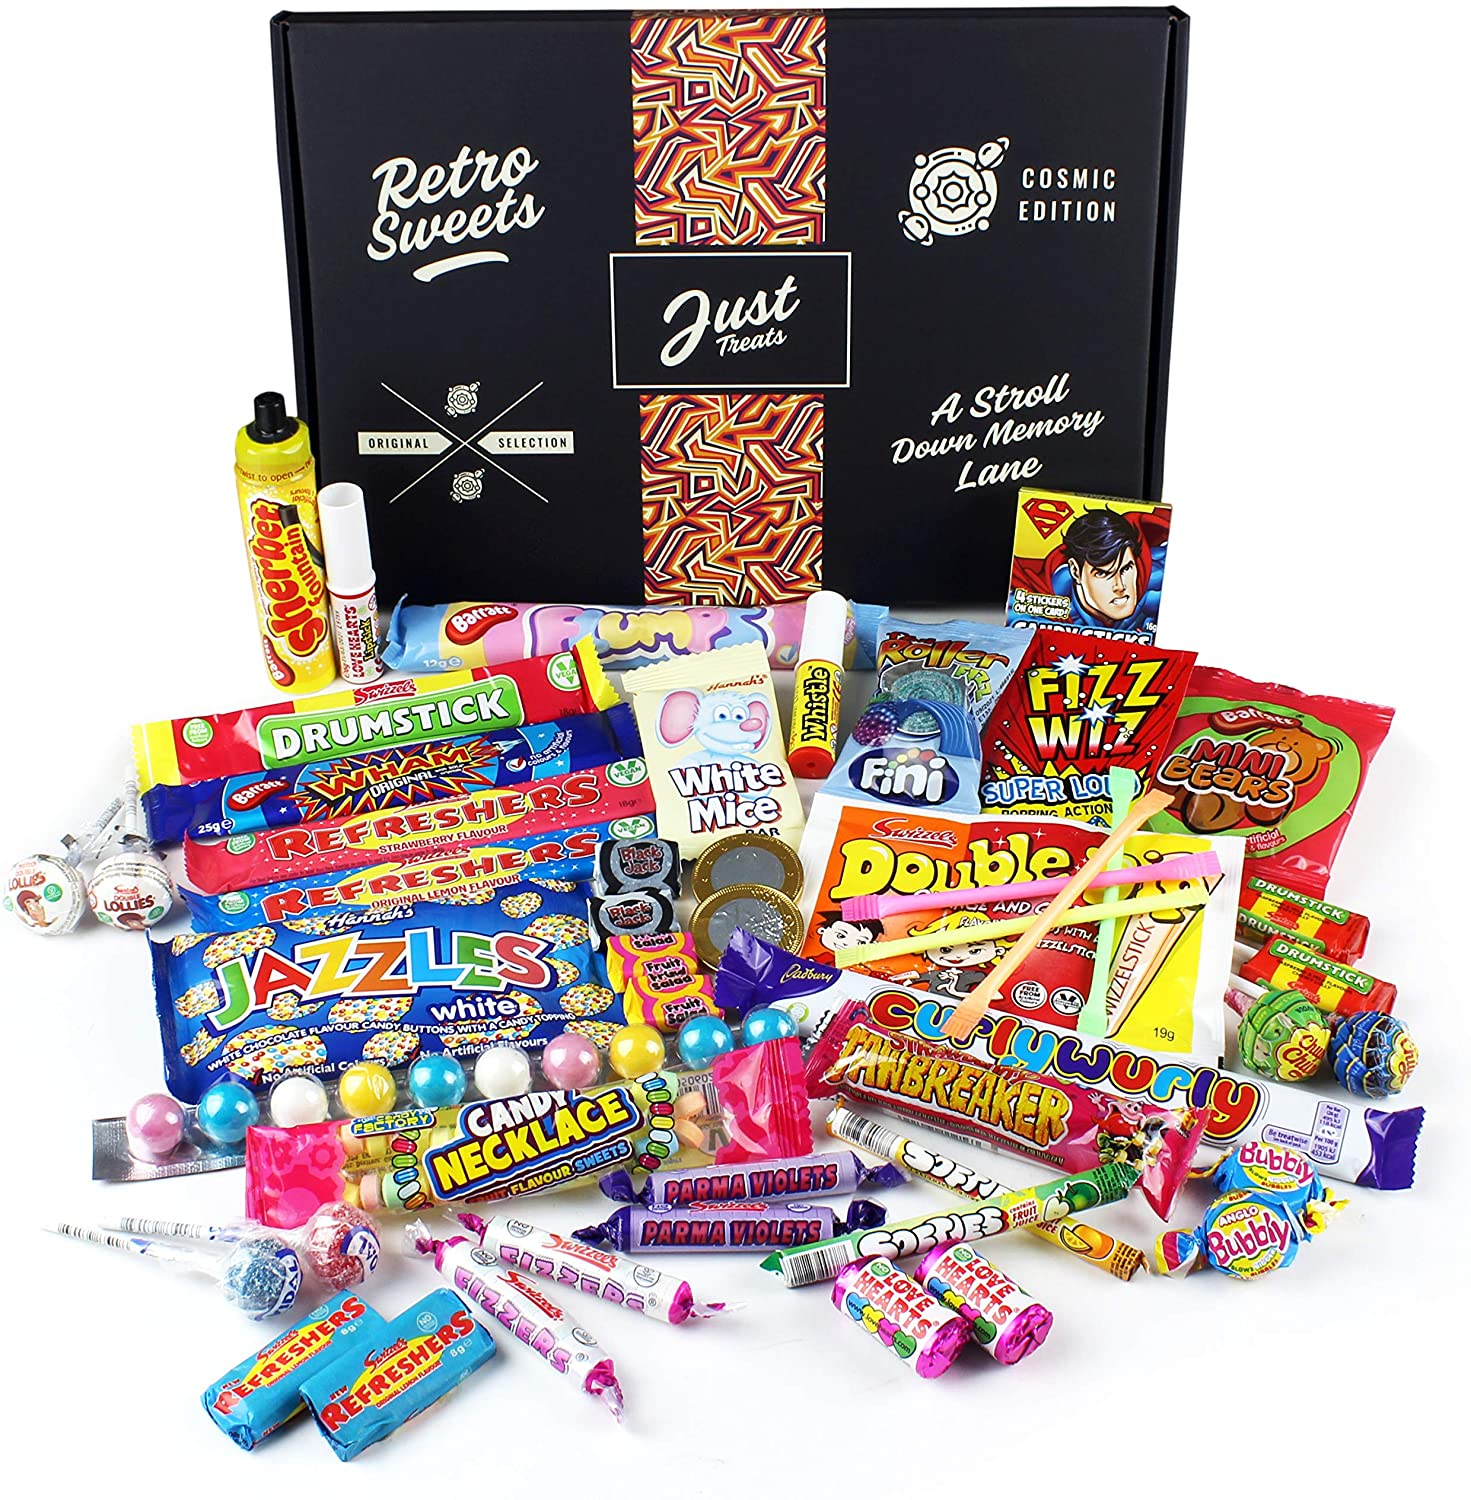 This GIANT retro sweet hamper is perfect for anyone with a sweet tooth